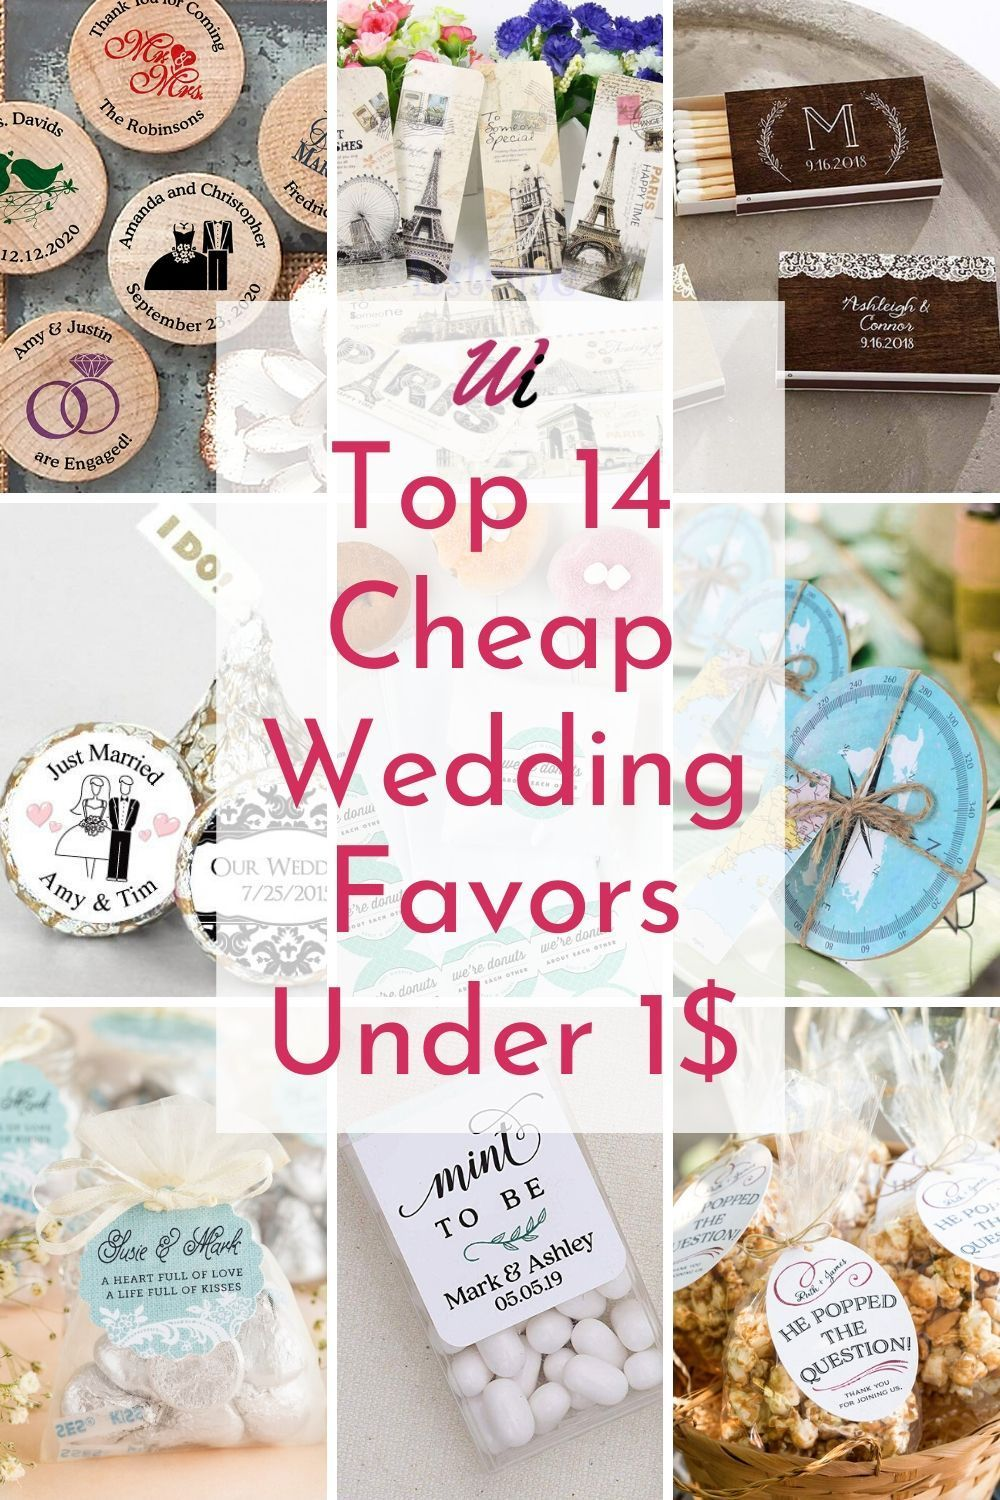 Top 14 Cheap Wedding Favors Under 1 In 2020 Diy Wedding Favors Cheap Gifts For Wedding Party Wedding Gifts For Guests